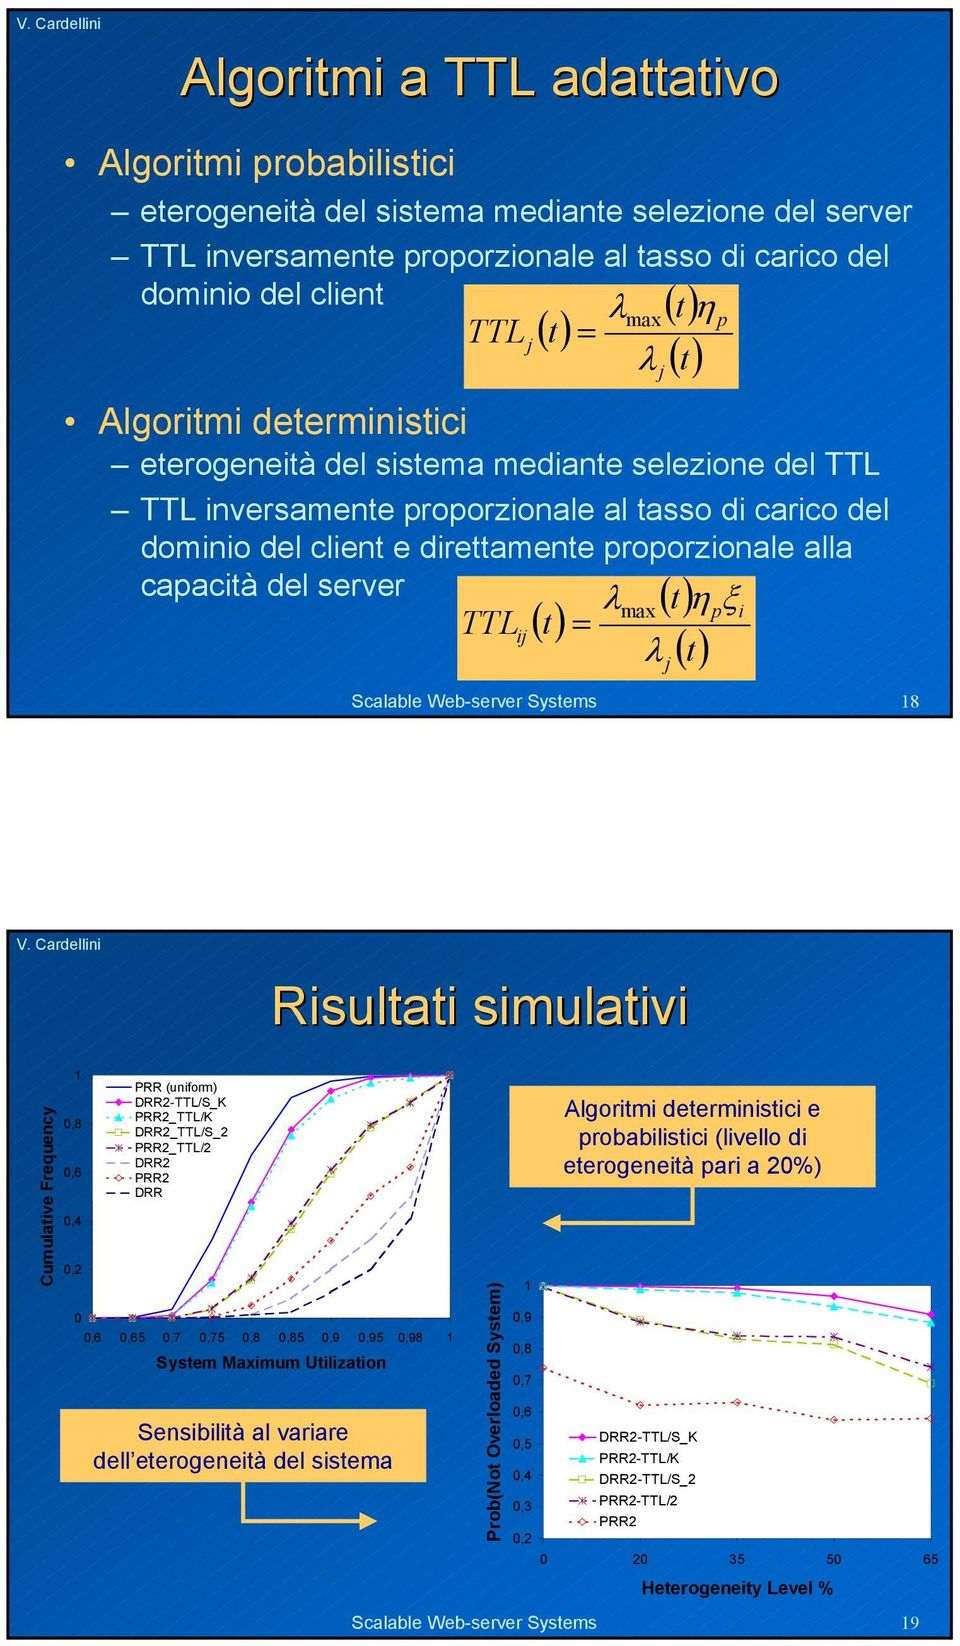 capacità del server λ ( t) η pξi TTLij() t = max λ t () Scalable Web-server Systems 18 j j () Risultati simulativi Cumulative Frequency 1,8,6,4,2 PRR (uniform) DRR2-TTL/S_K PRR2_TTL/K DRR2_TTL/S_2